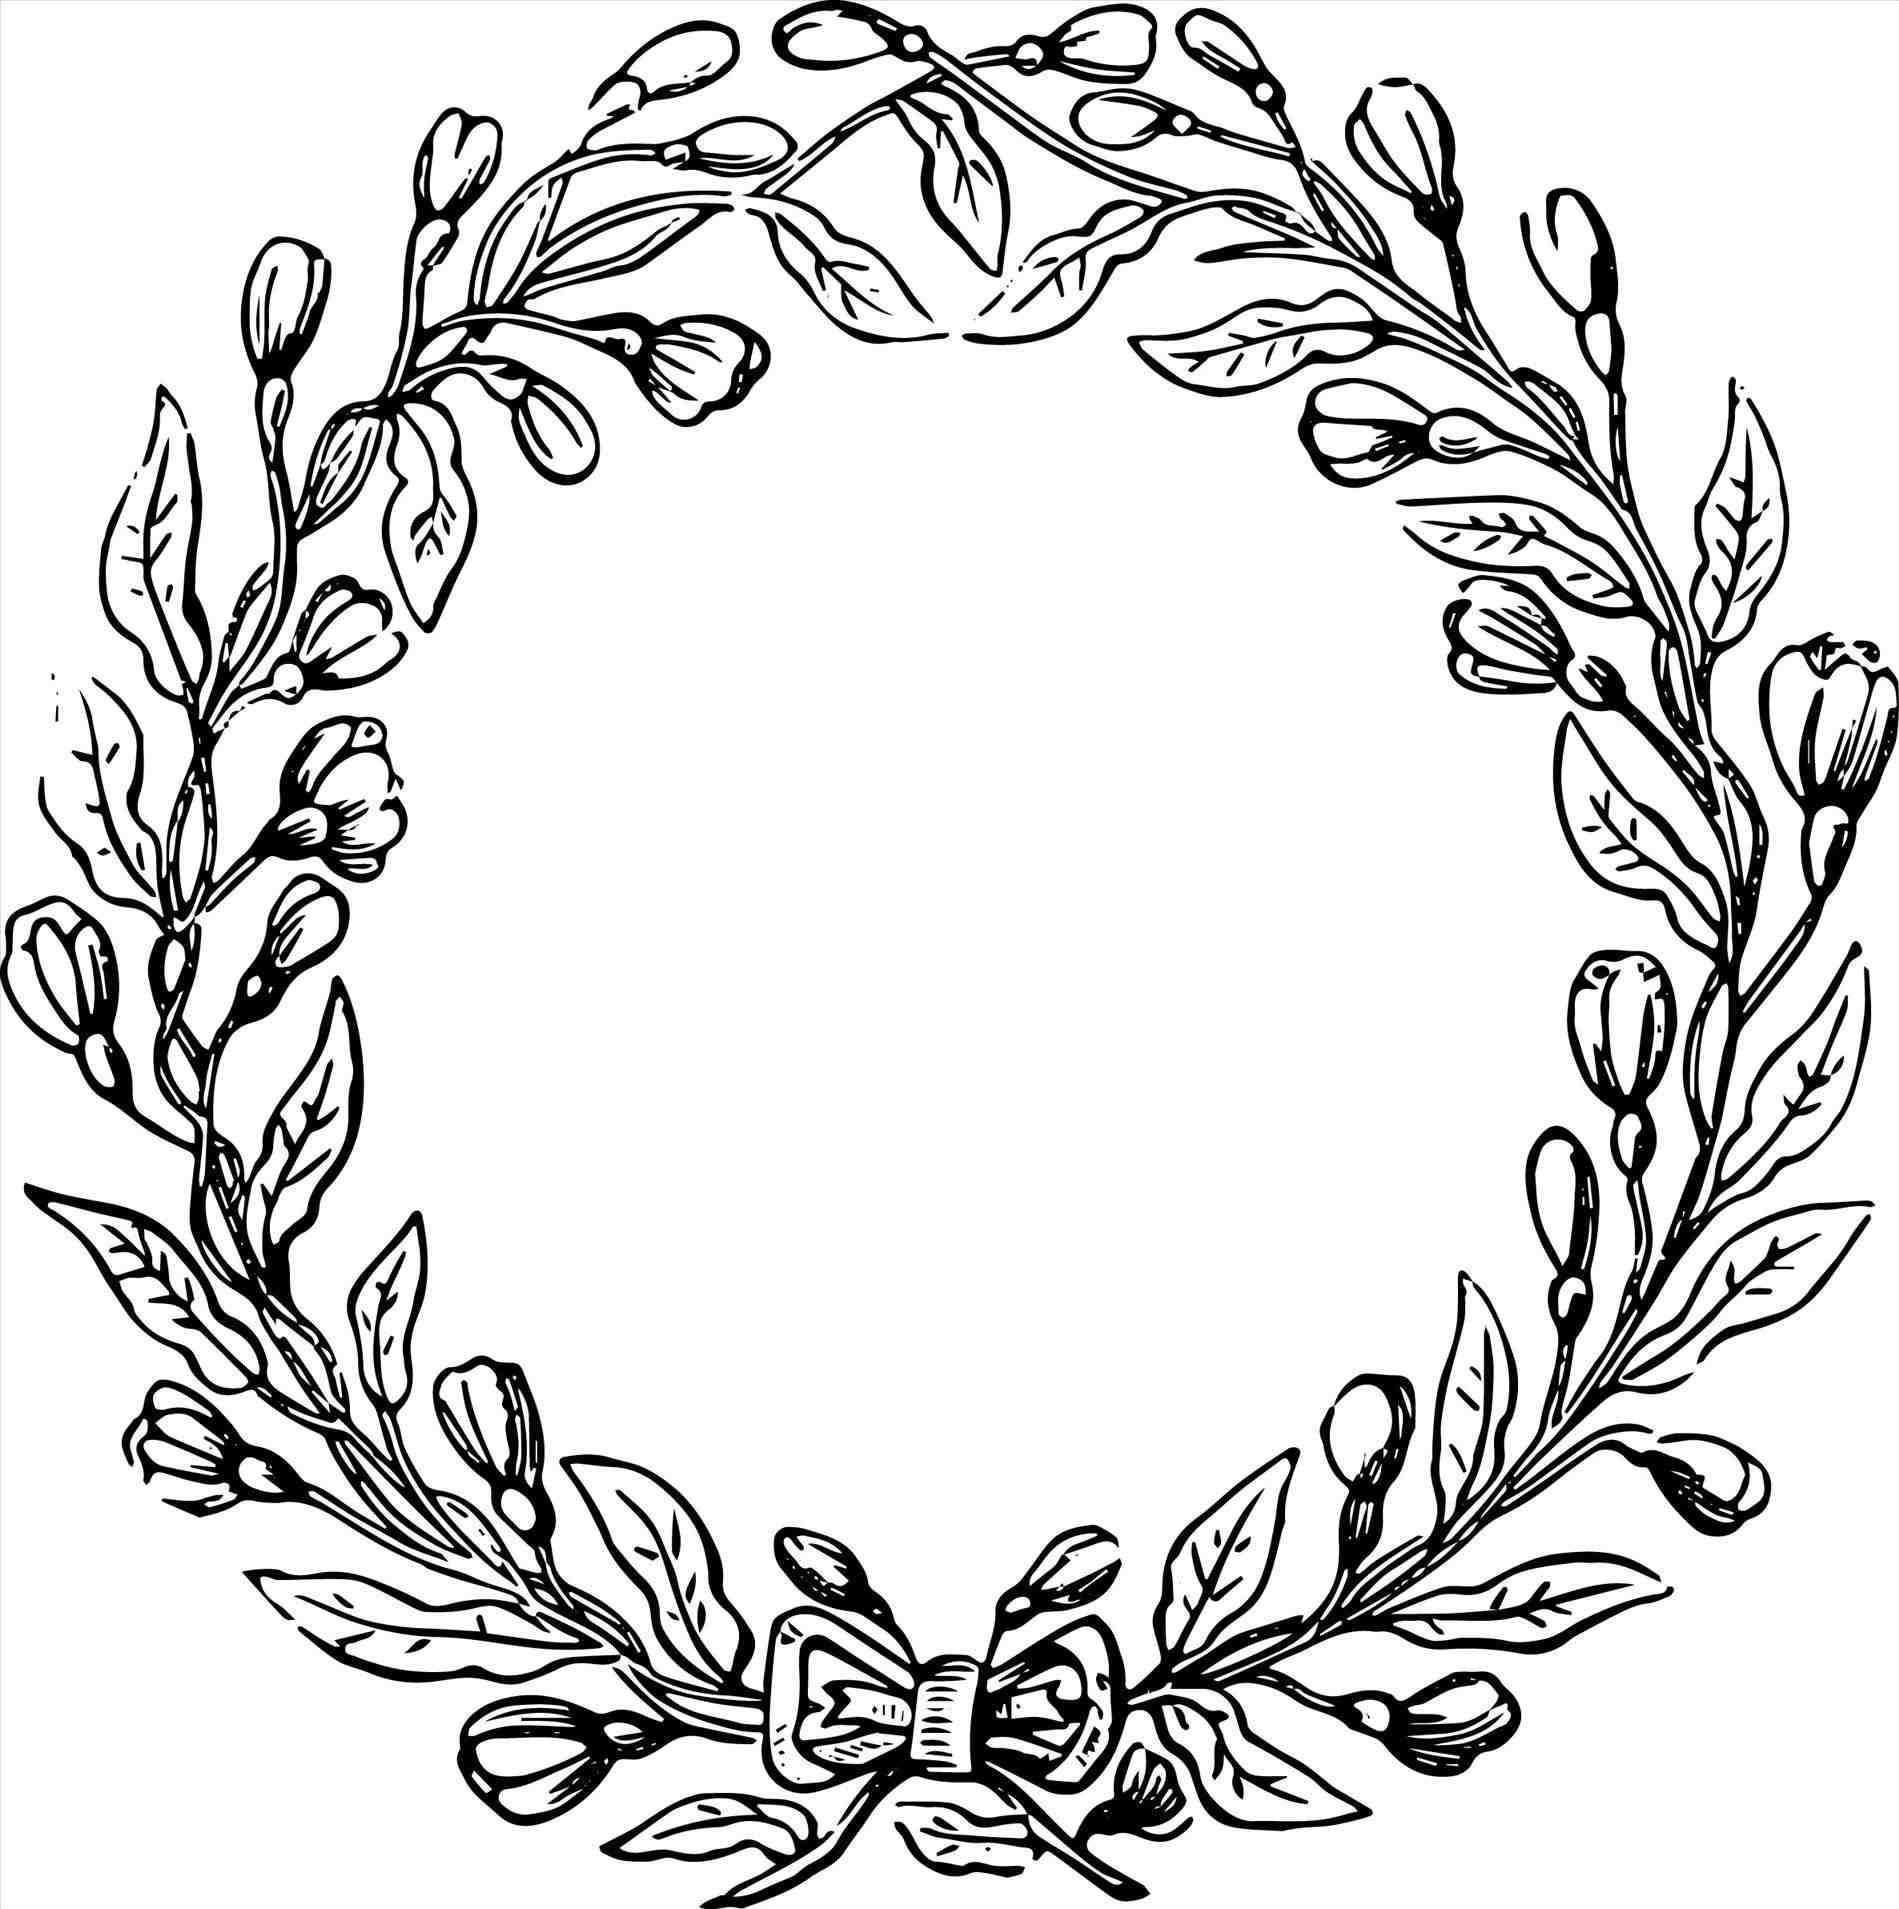 1899x1909 Stock Vector Bow Christmas Wreath Border Black And White Ribbon